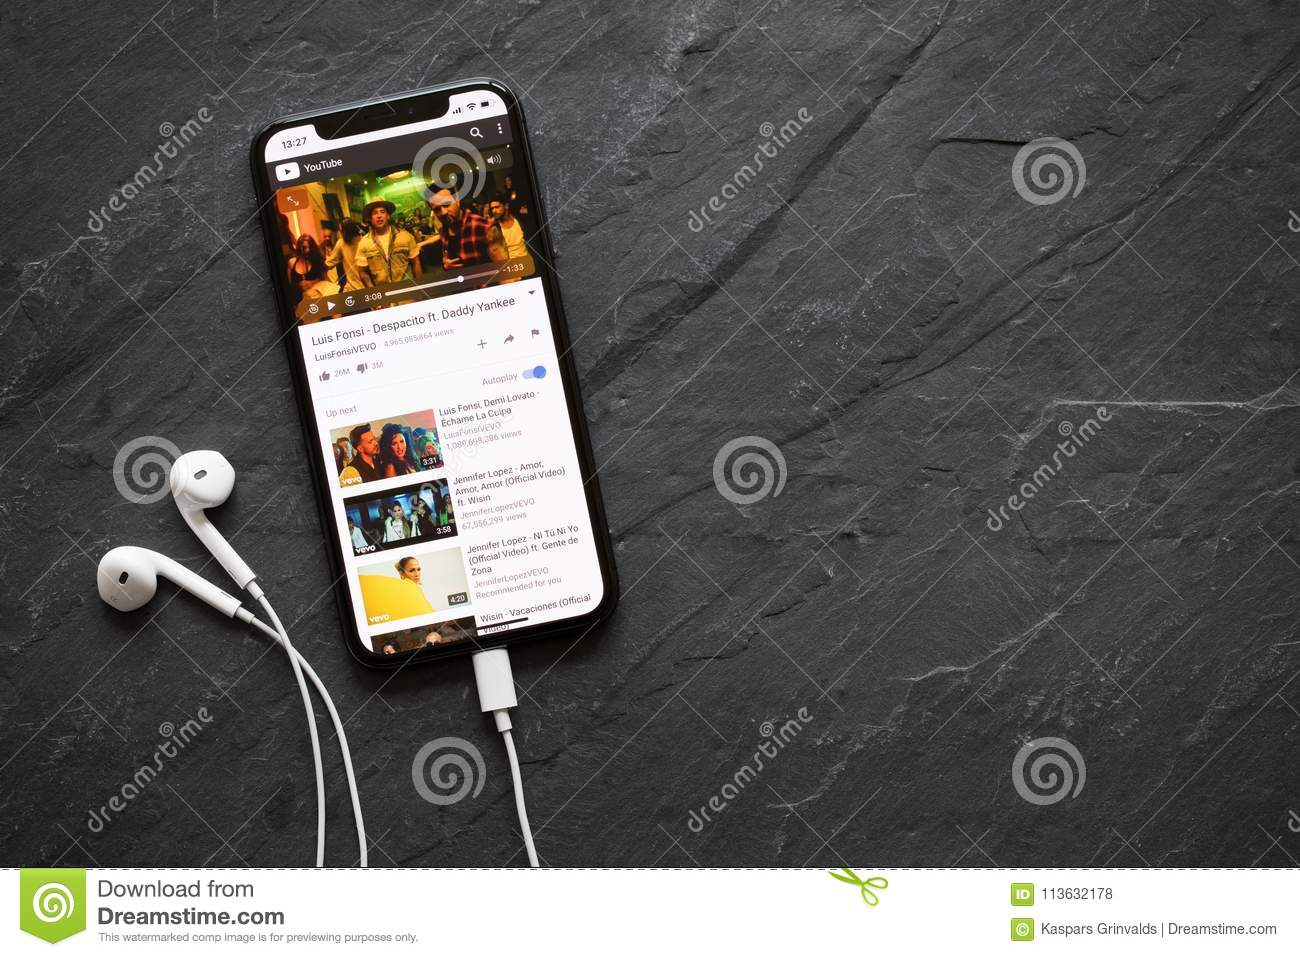 IPhone X Playing Popular Song Despacito On YouTube Video